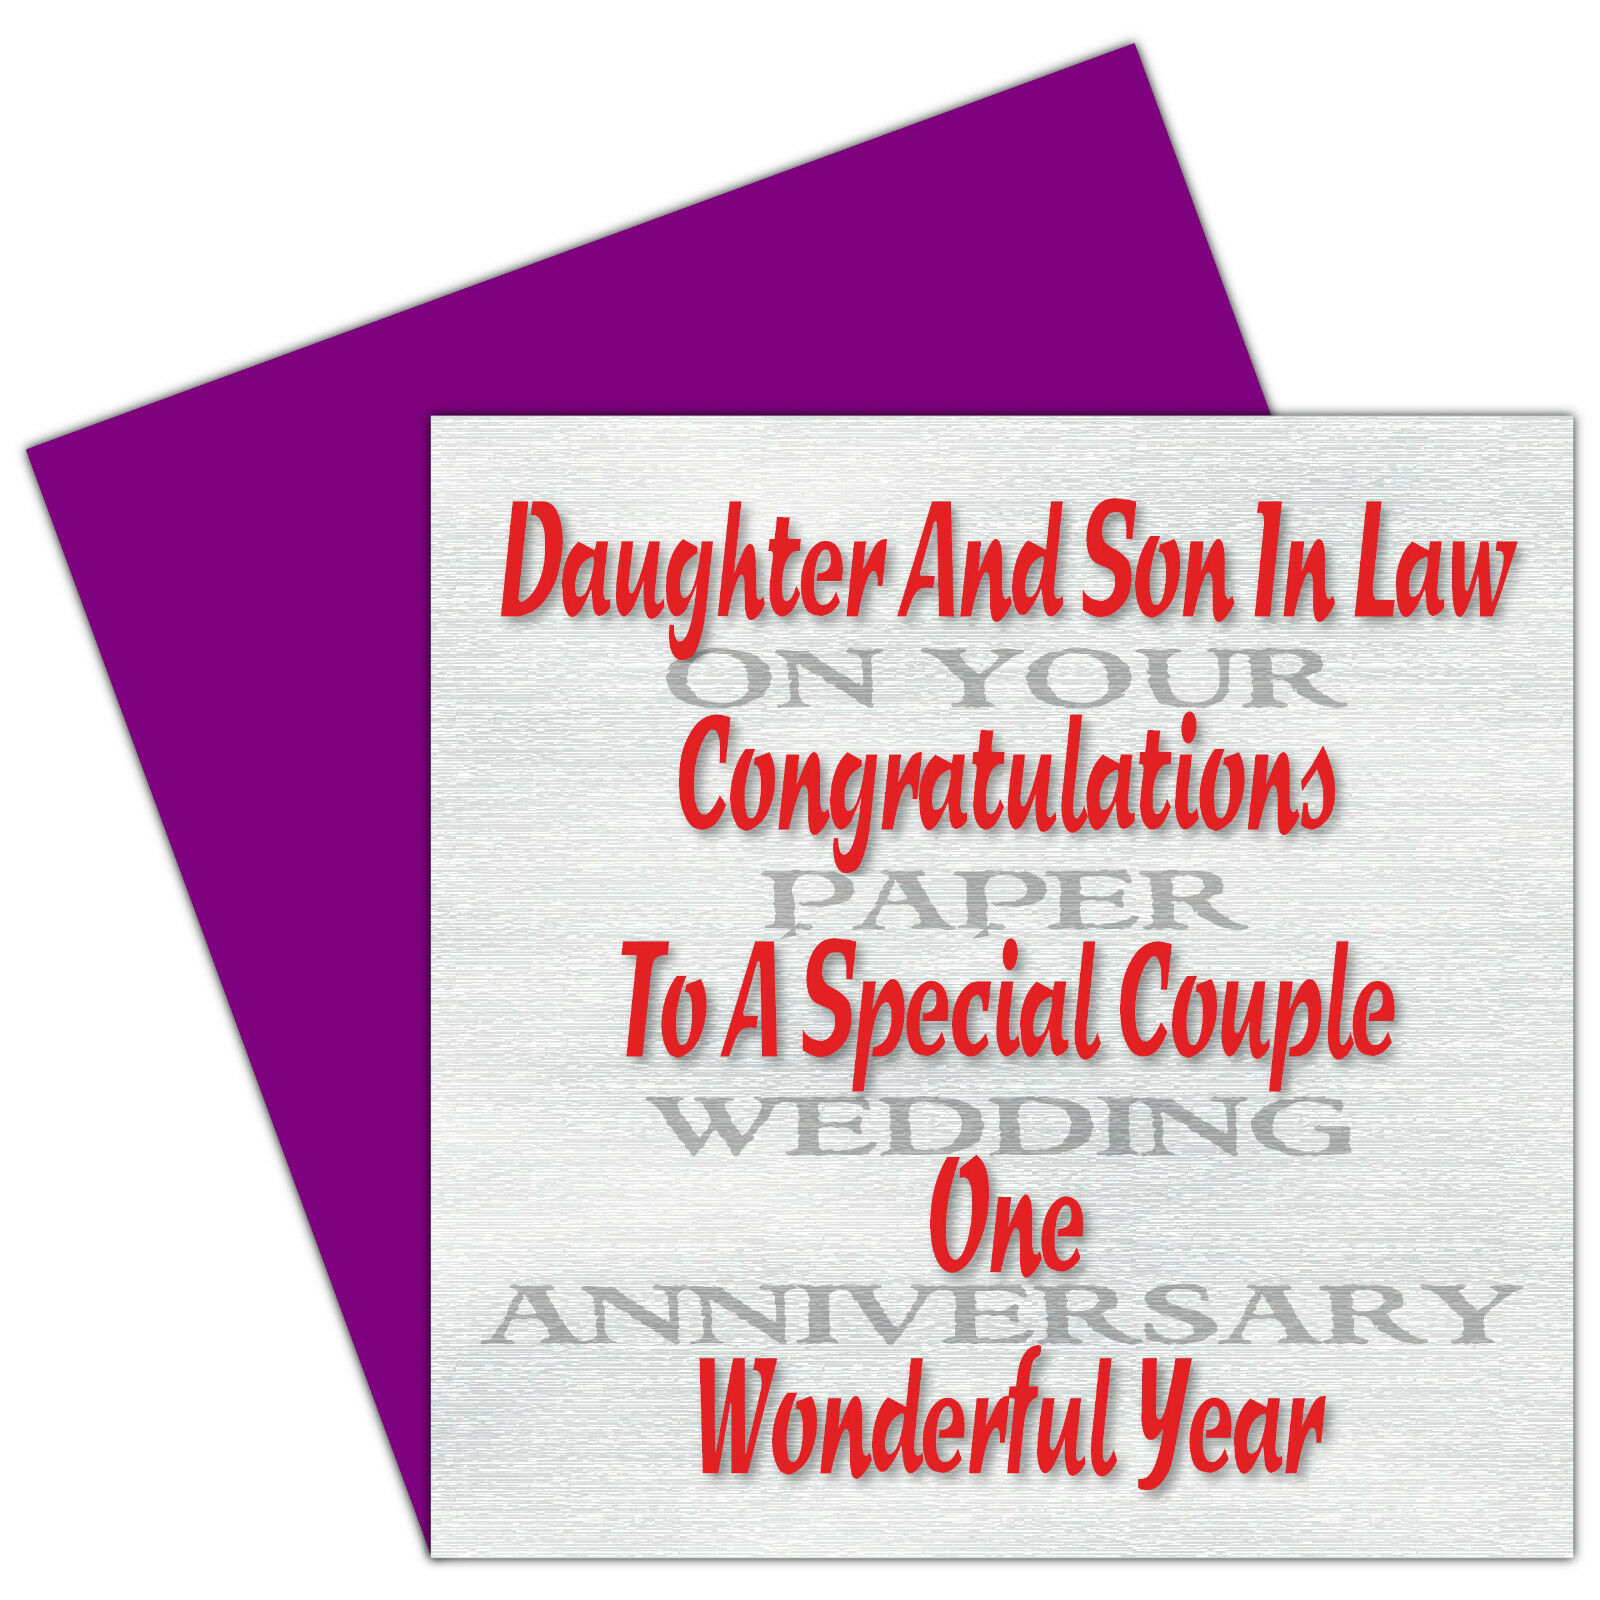 Valentine Card Sayings For Daughter And Son In Law  Daughter in